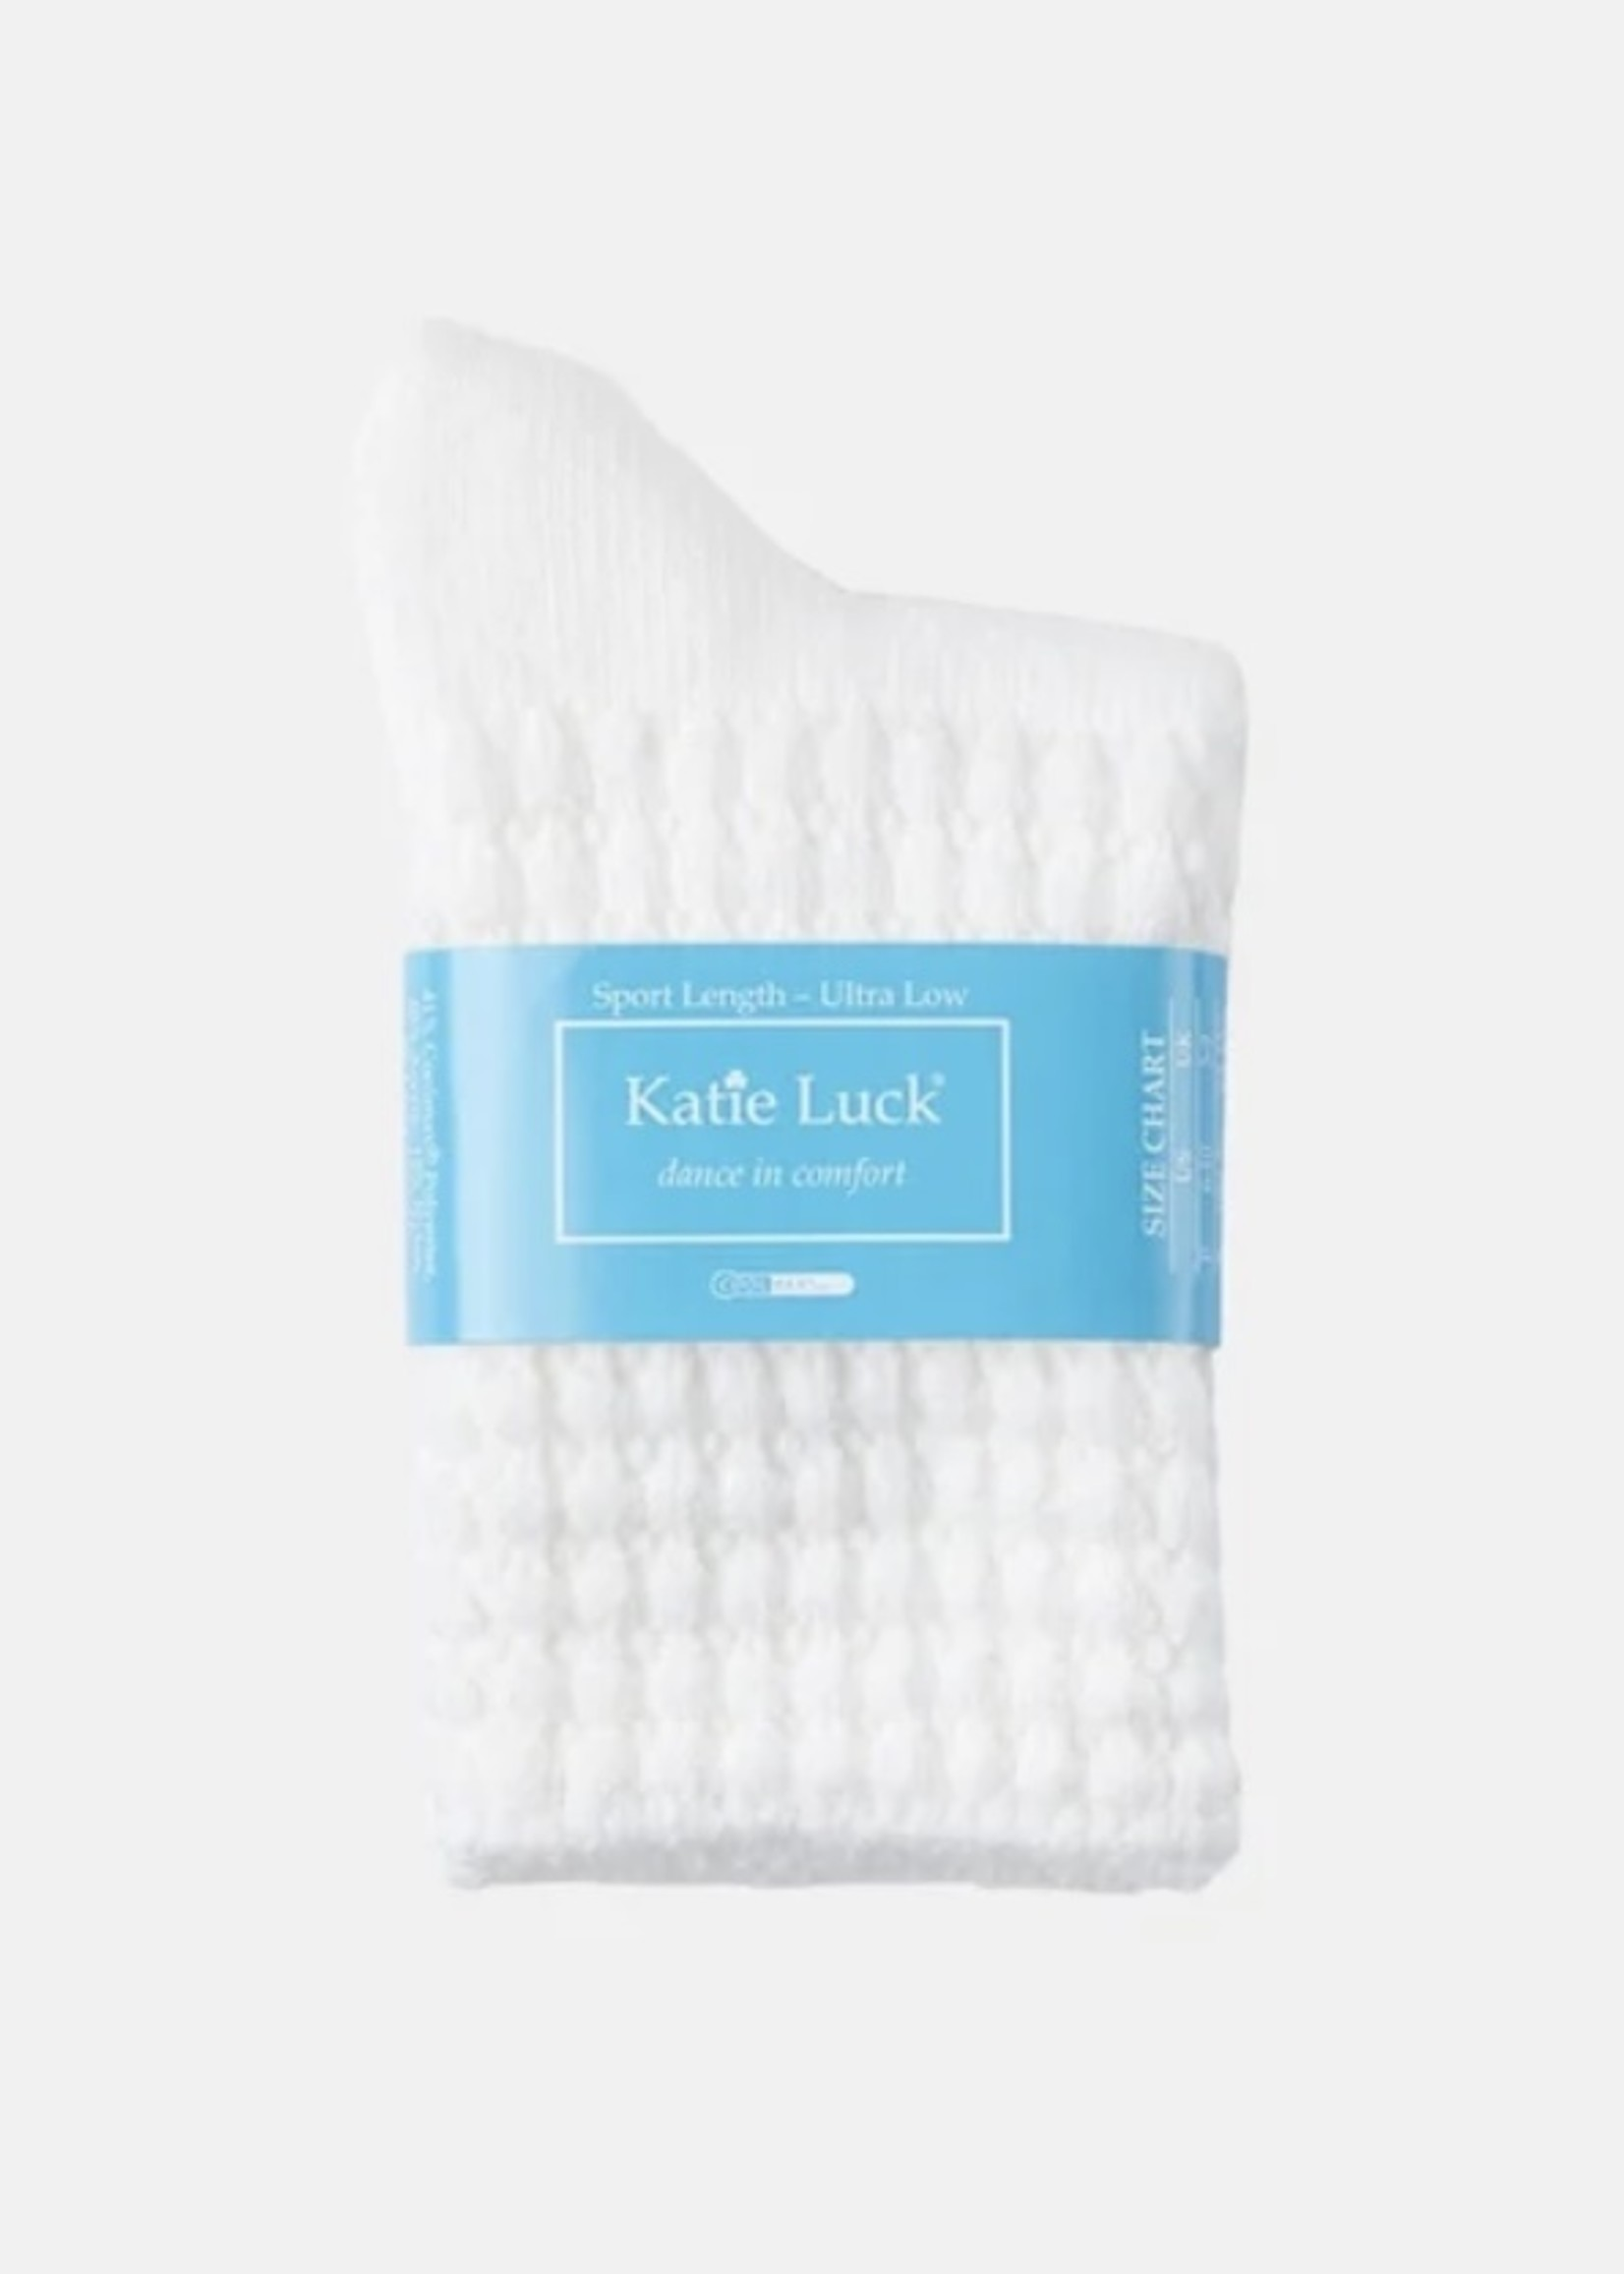 Katie Luck Katie Luck ultra low sport length poodle sock